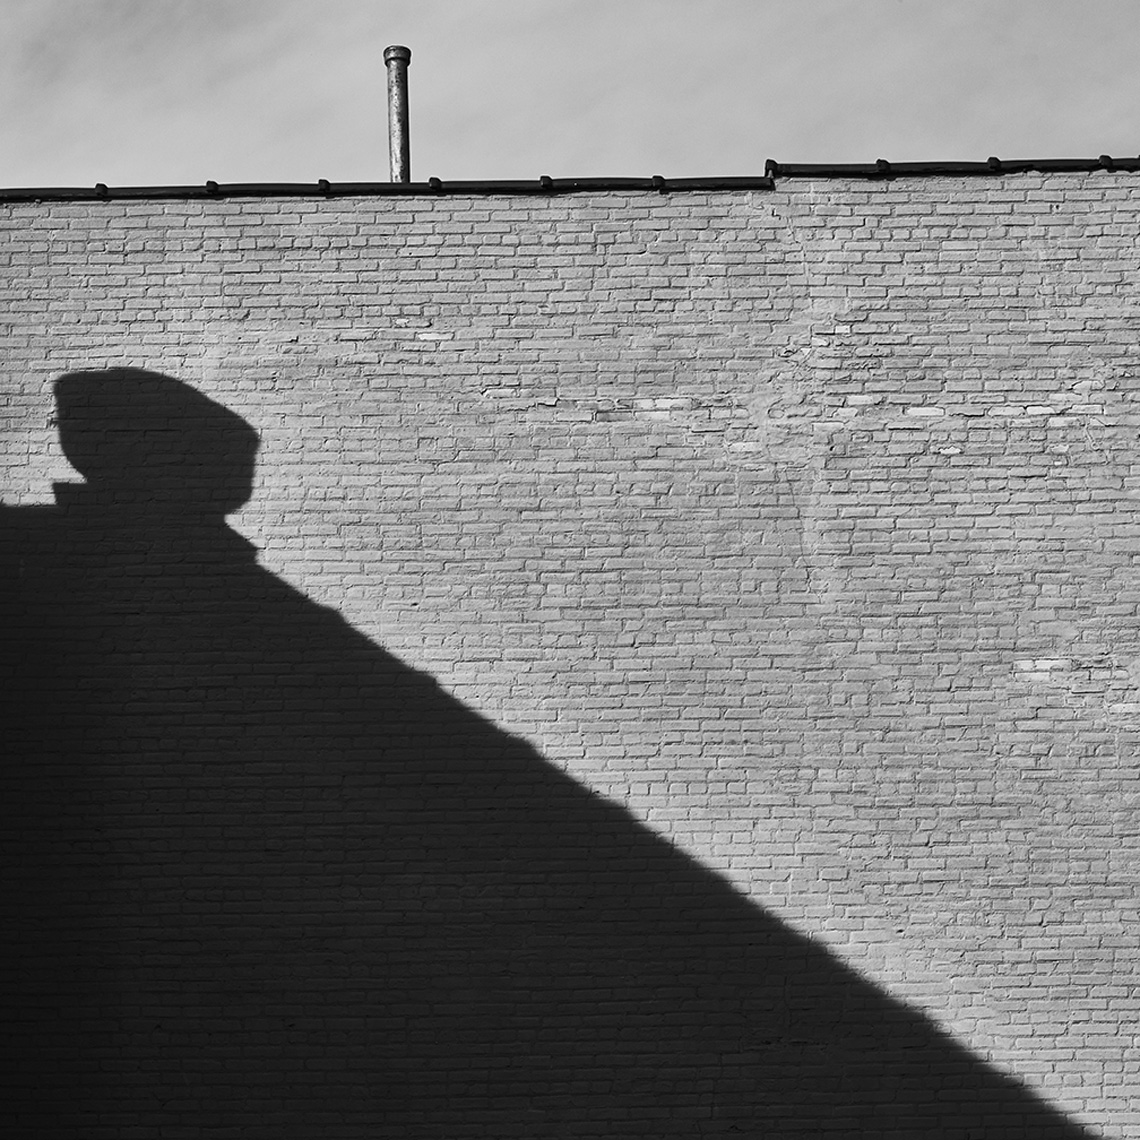 2017-01-11_wall_shadow_bw